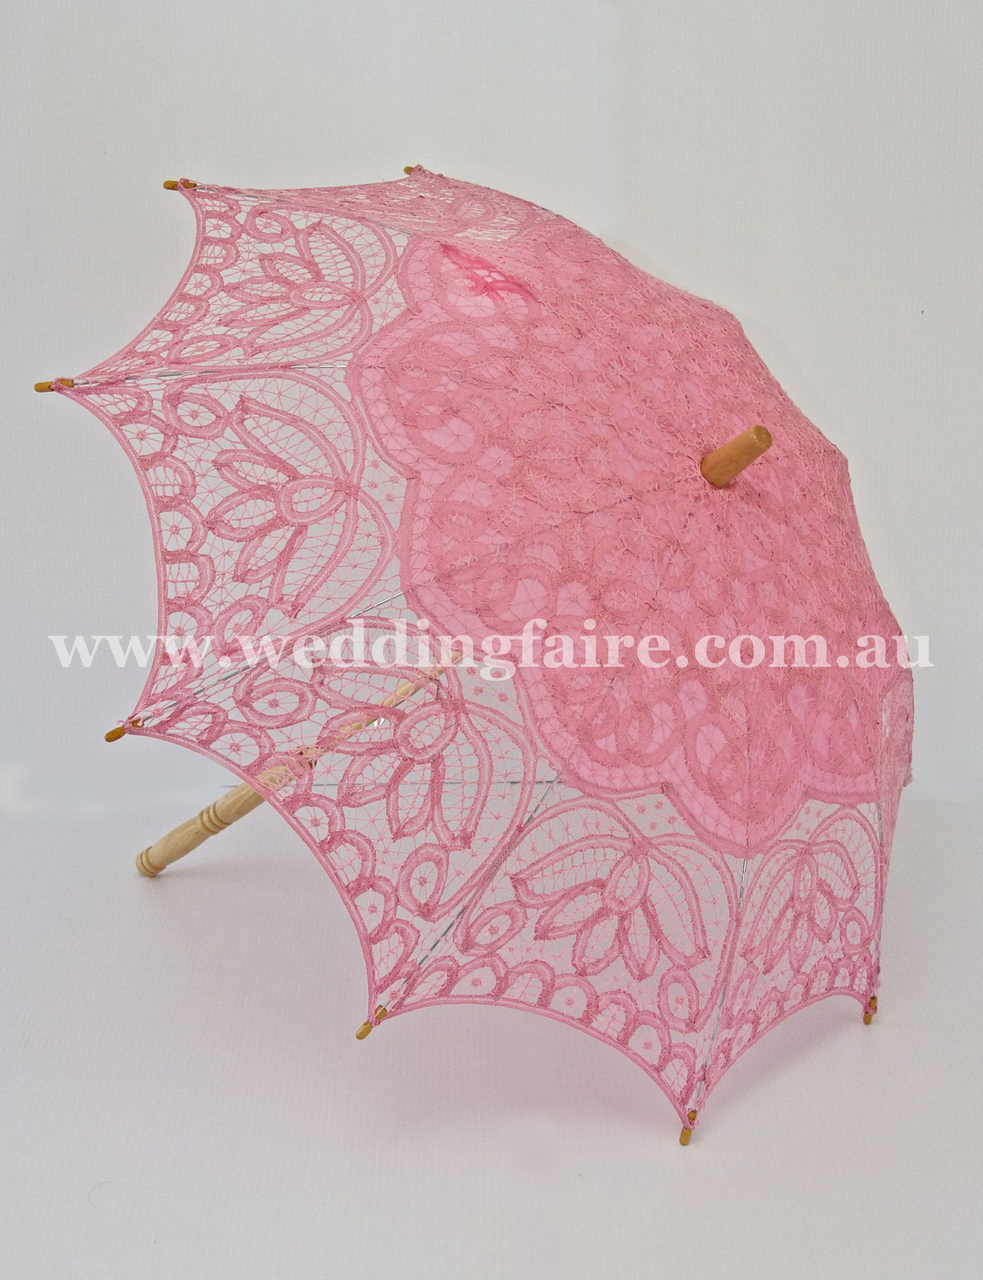 Childs Classic Lace Parasol - Pink - The Wedding Faire | Inspired ...